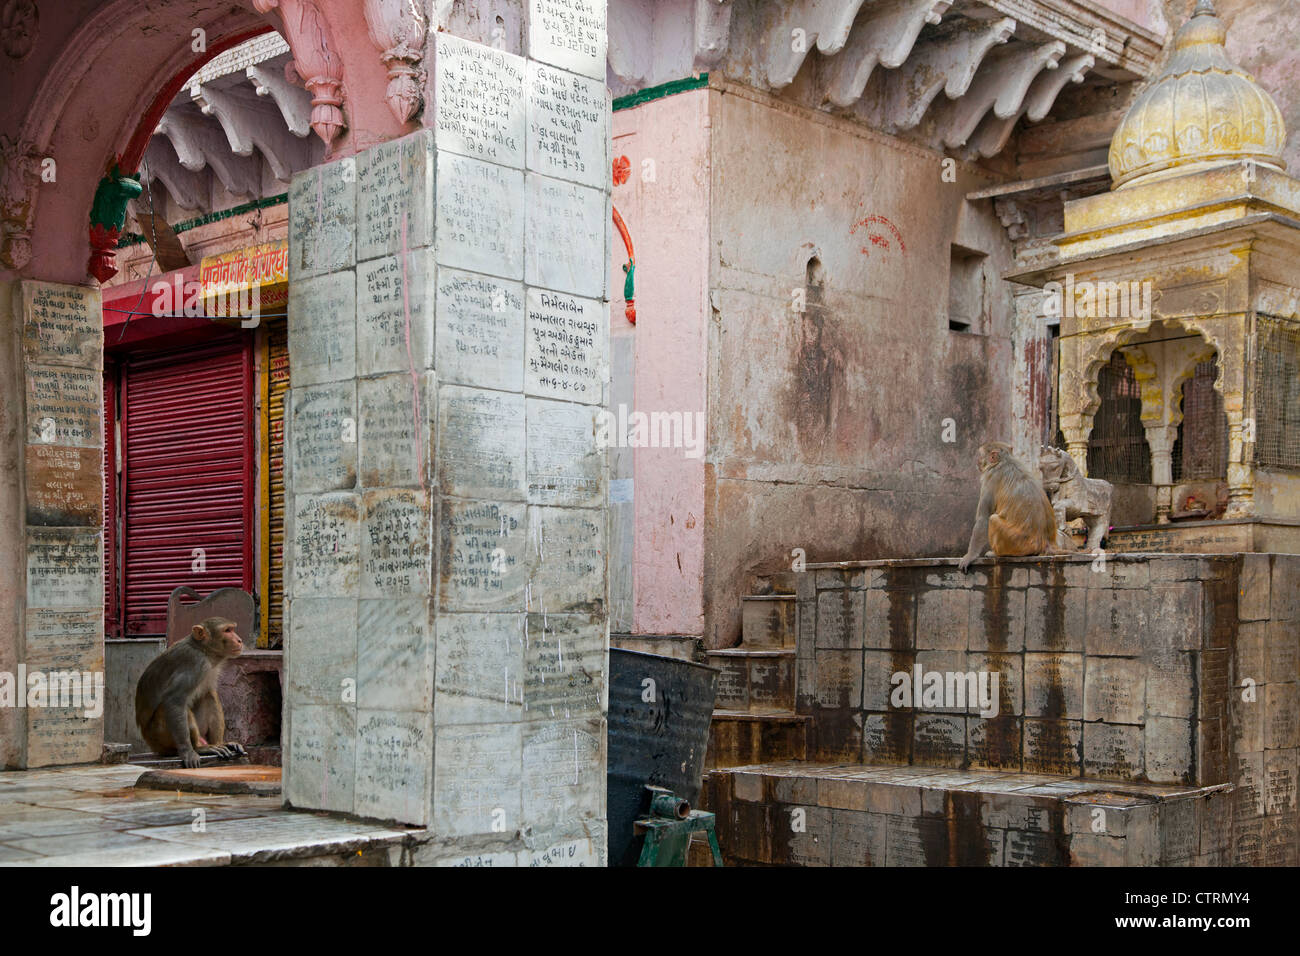 Macaque monkeys at traditional bathhouse in Mathura, Uttar Pradesh, India - Stock Image